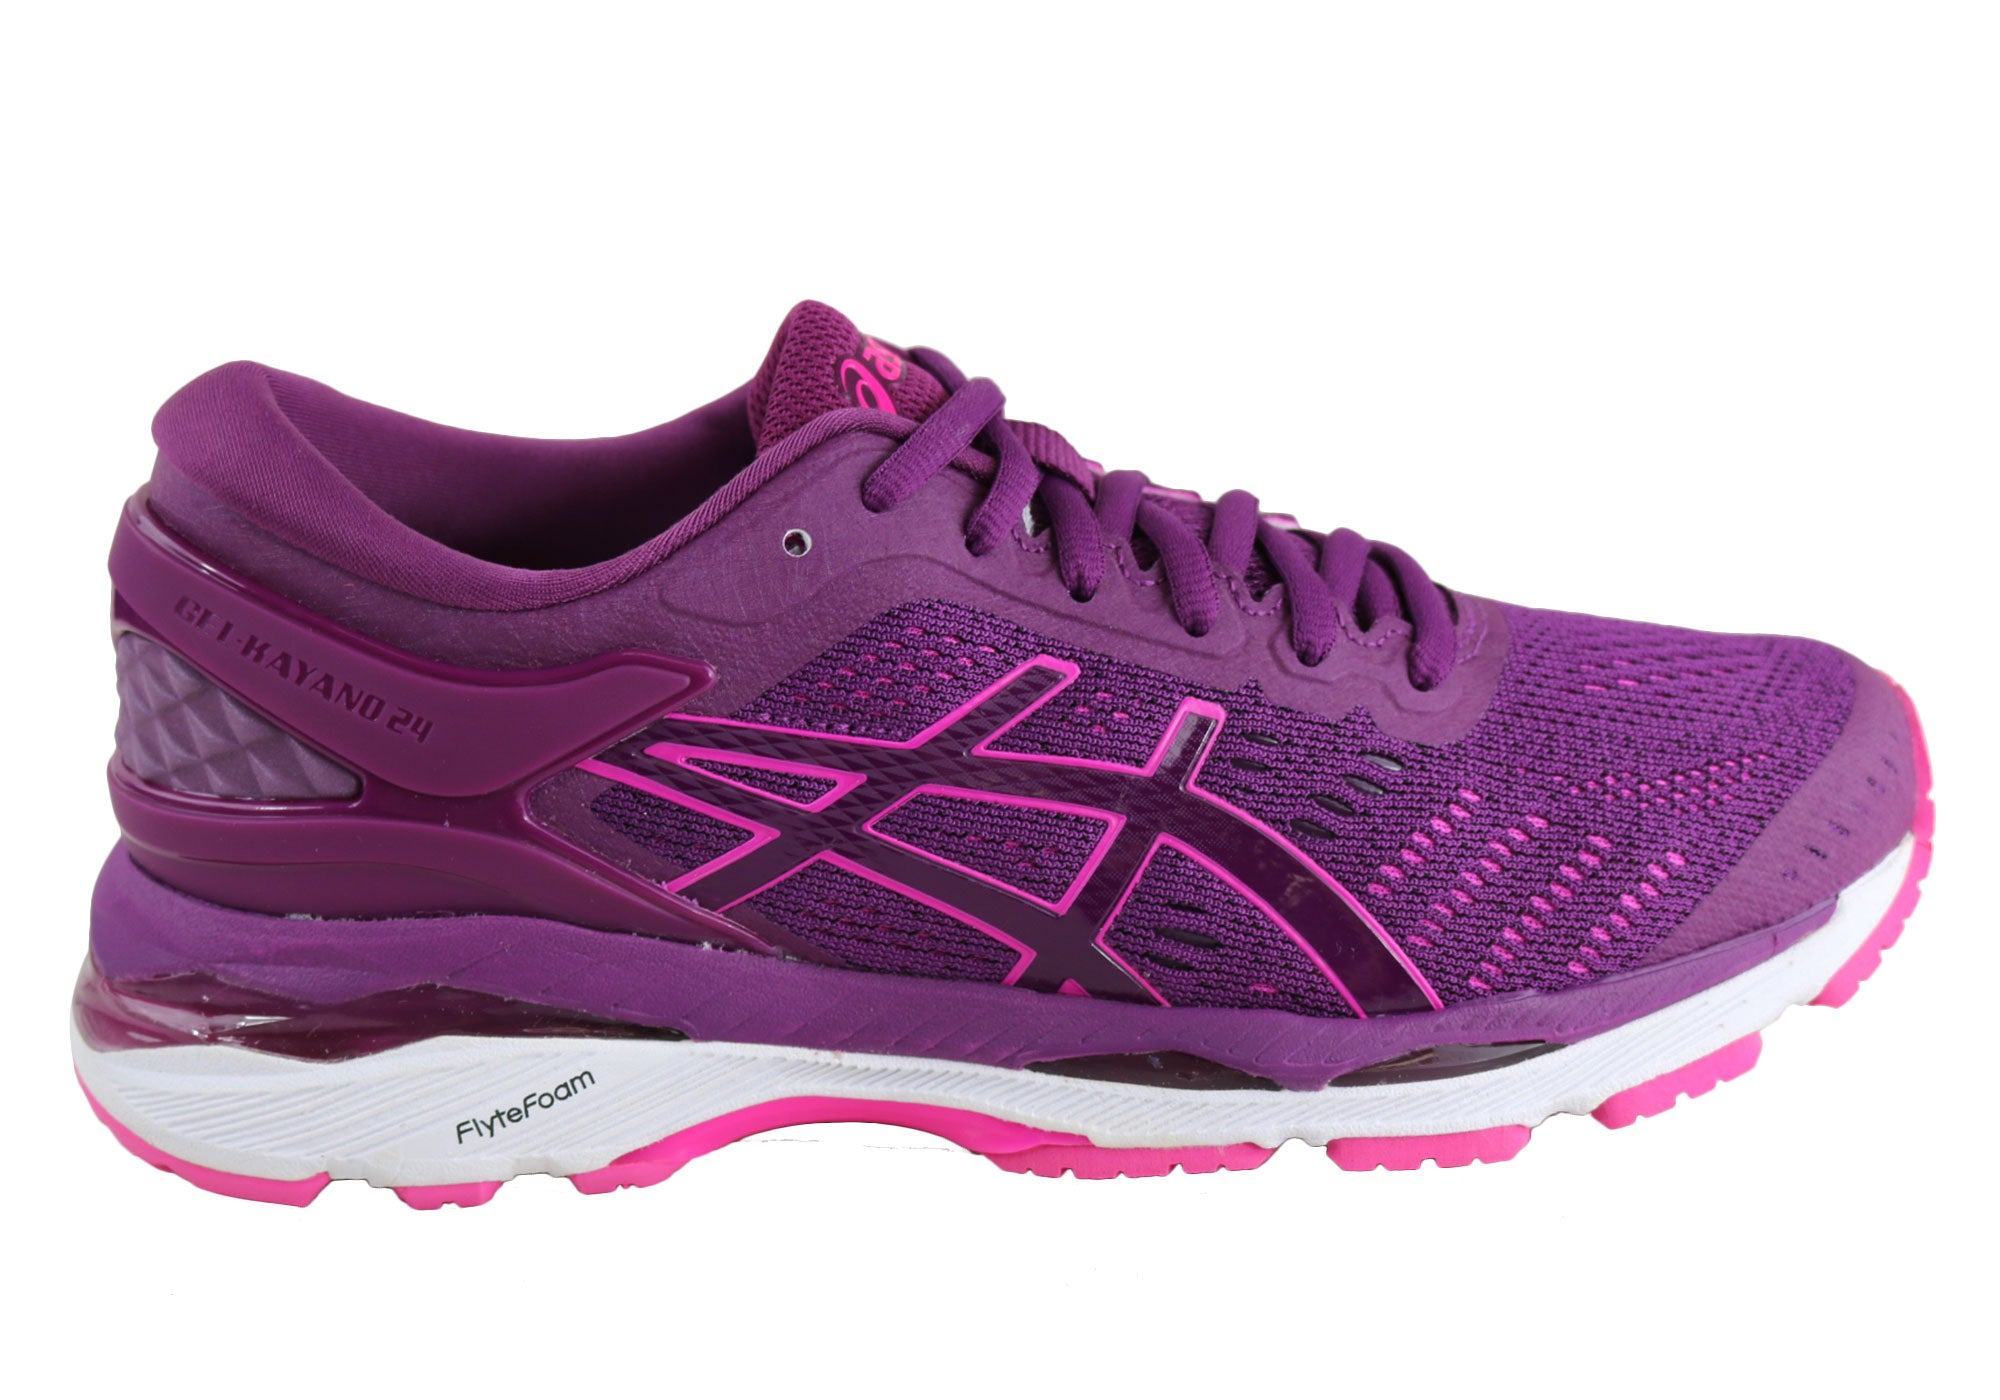 Asics Gel-Kayano 24 Womens Premium Cushioned Running Sport Shoes ... 447291e99b